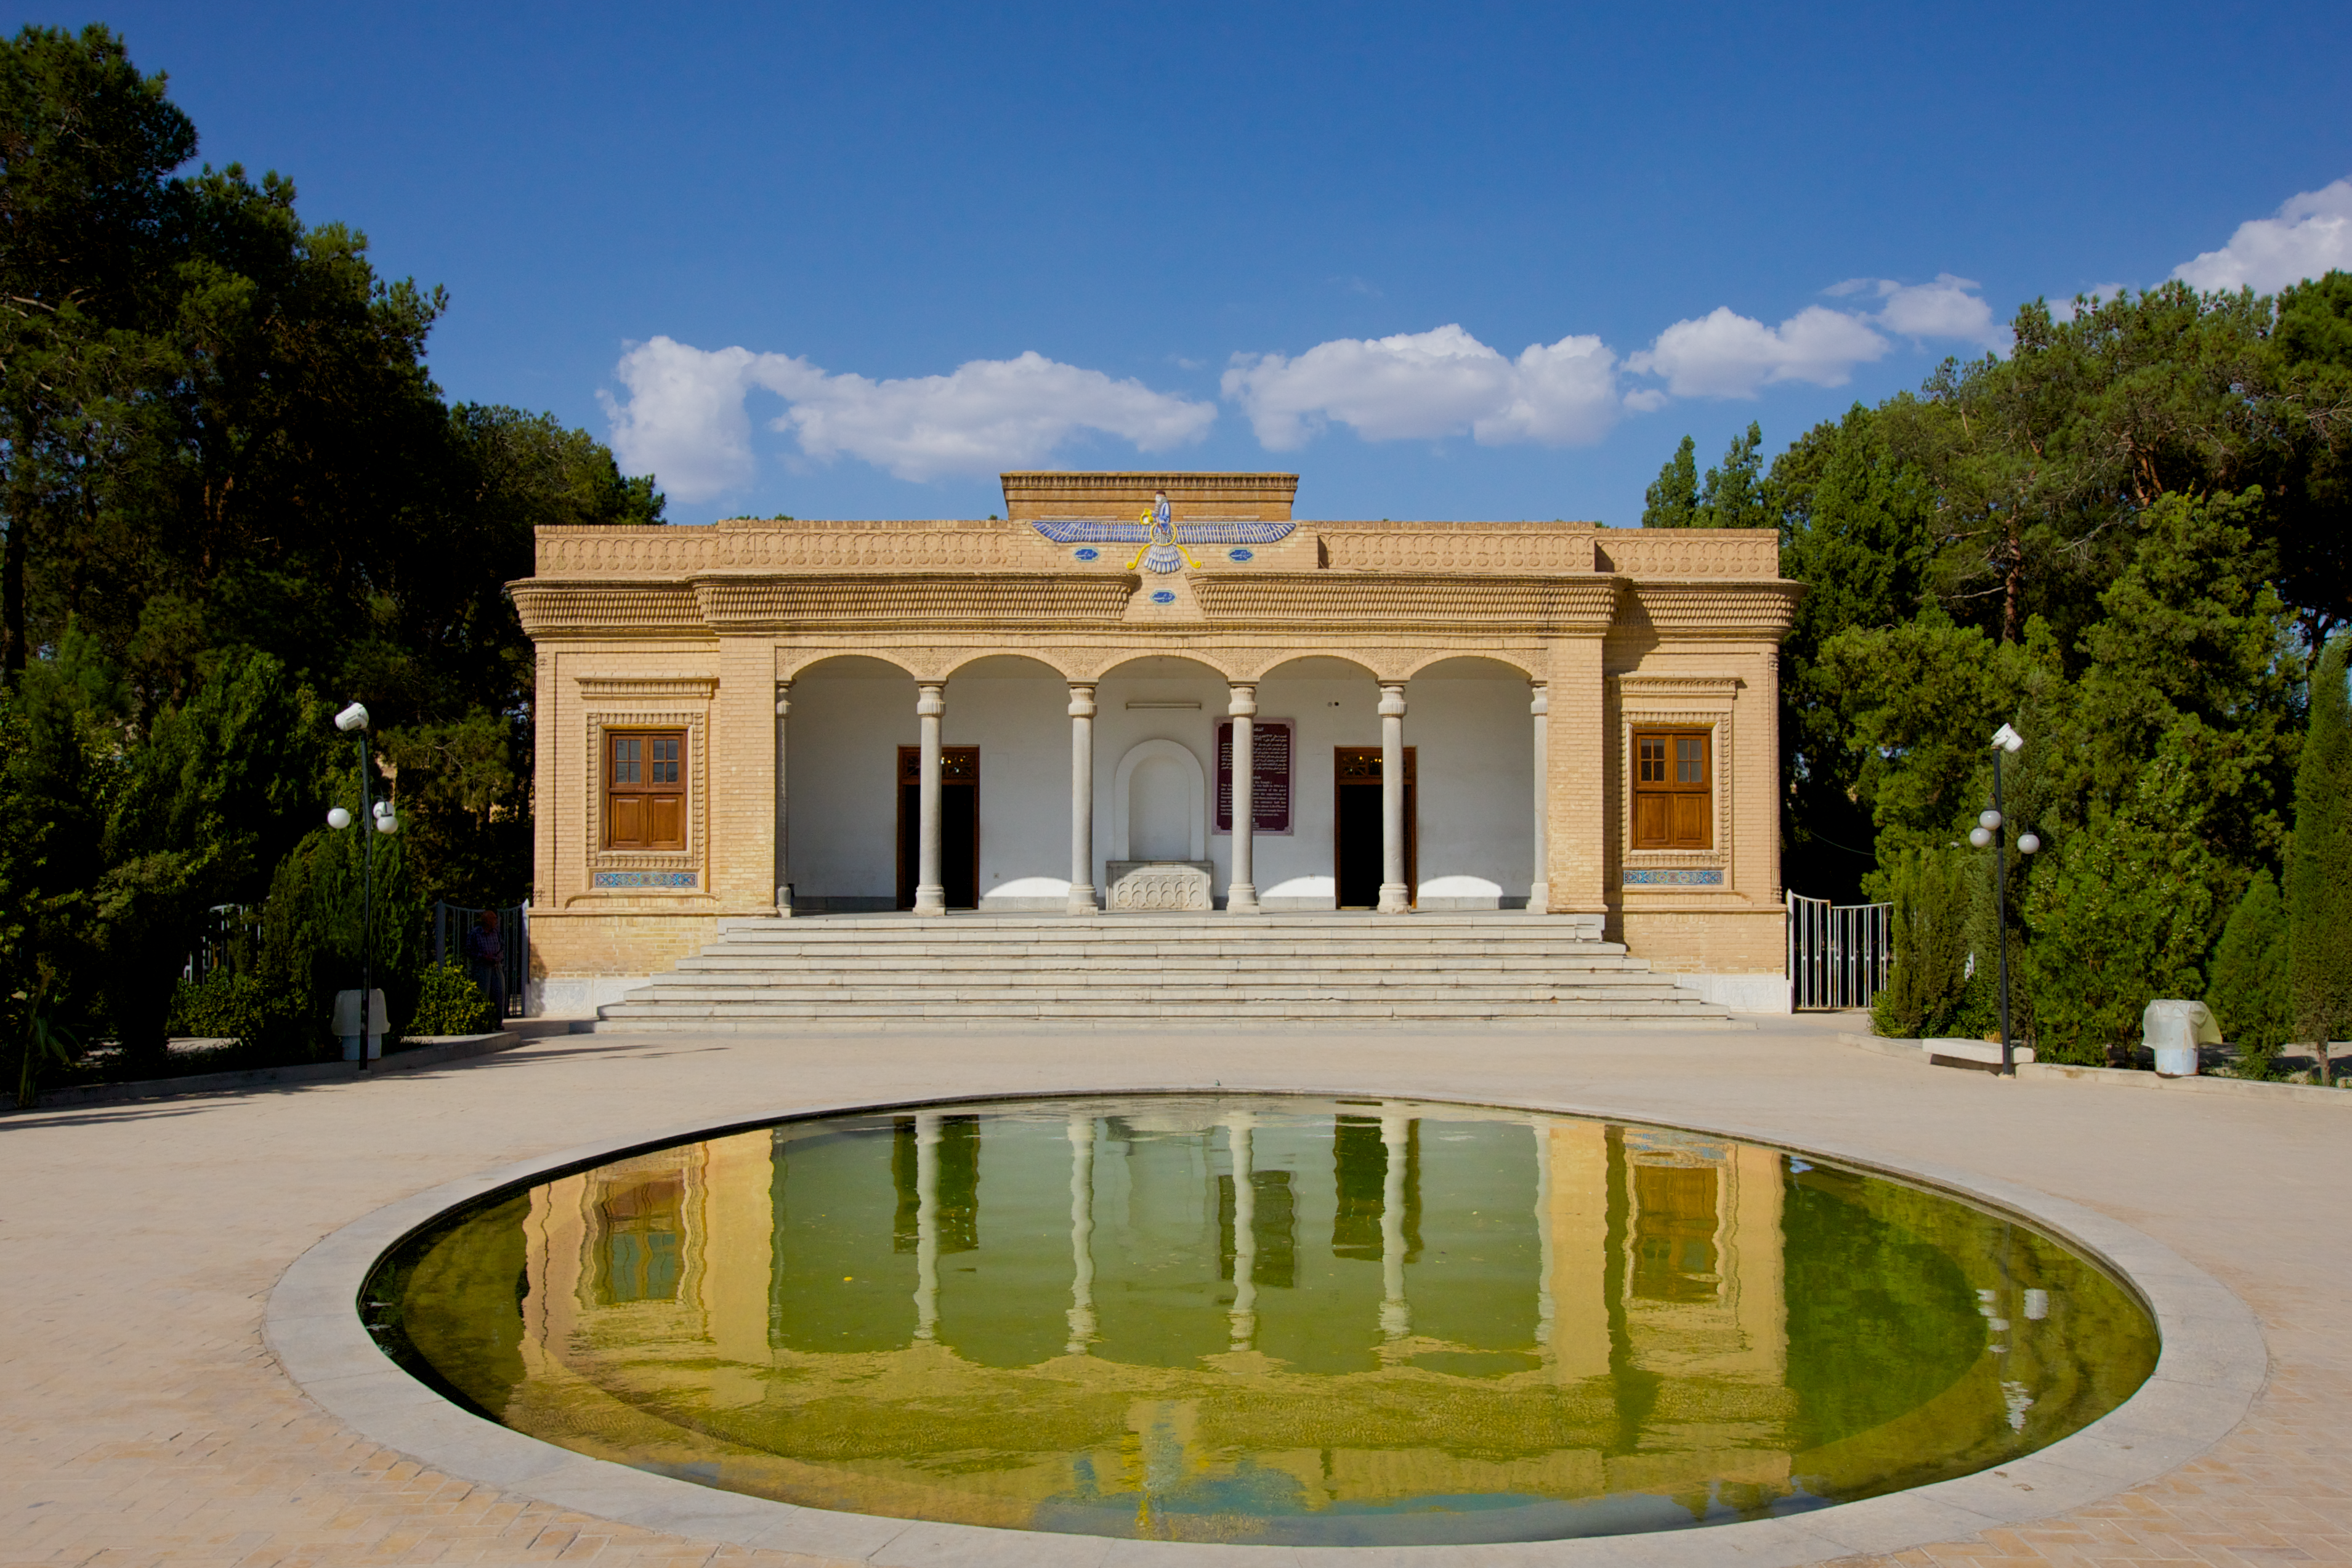 File:Zoroastrian fire temple in Yazd.png